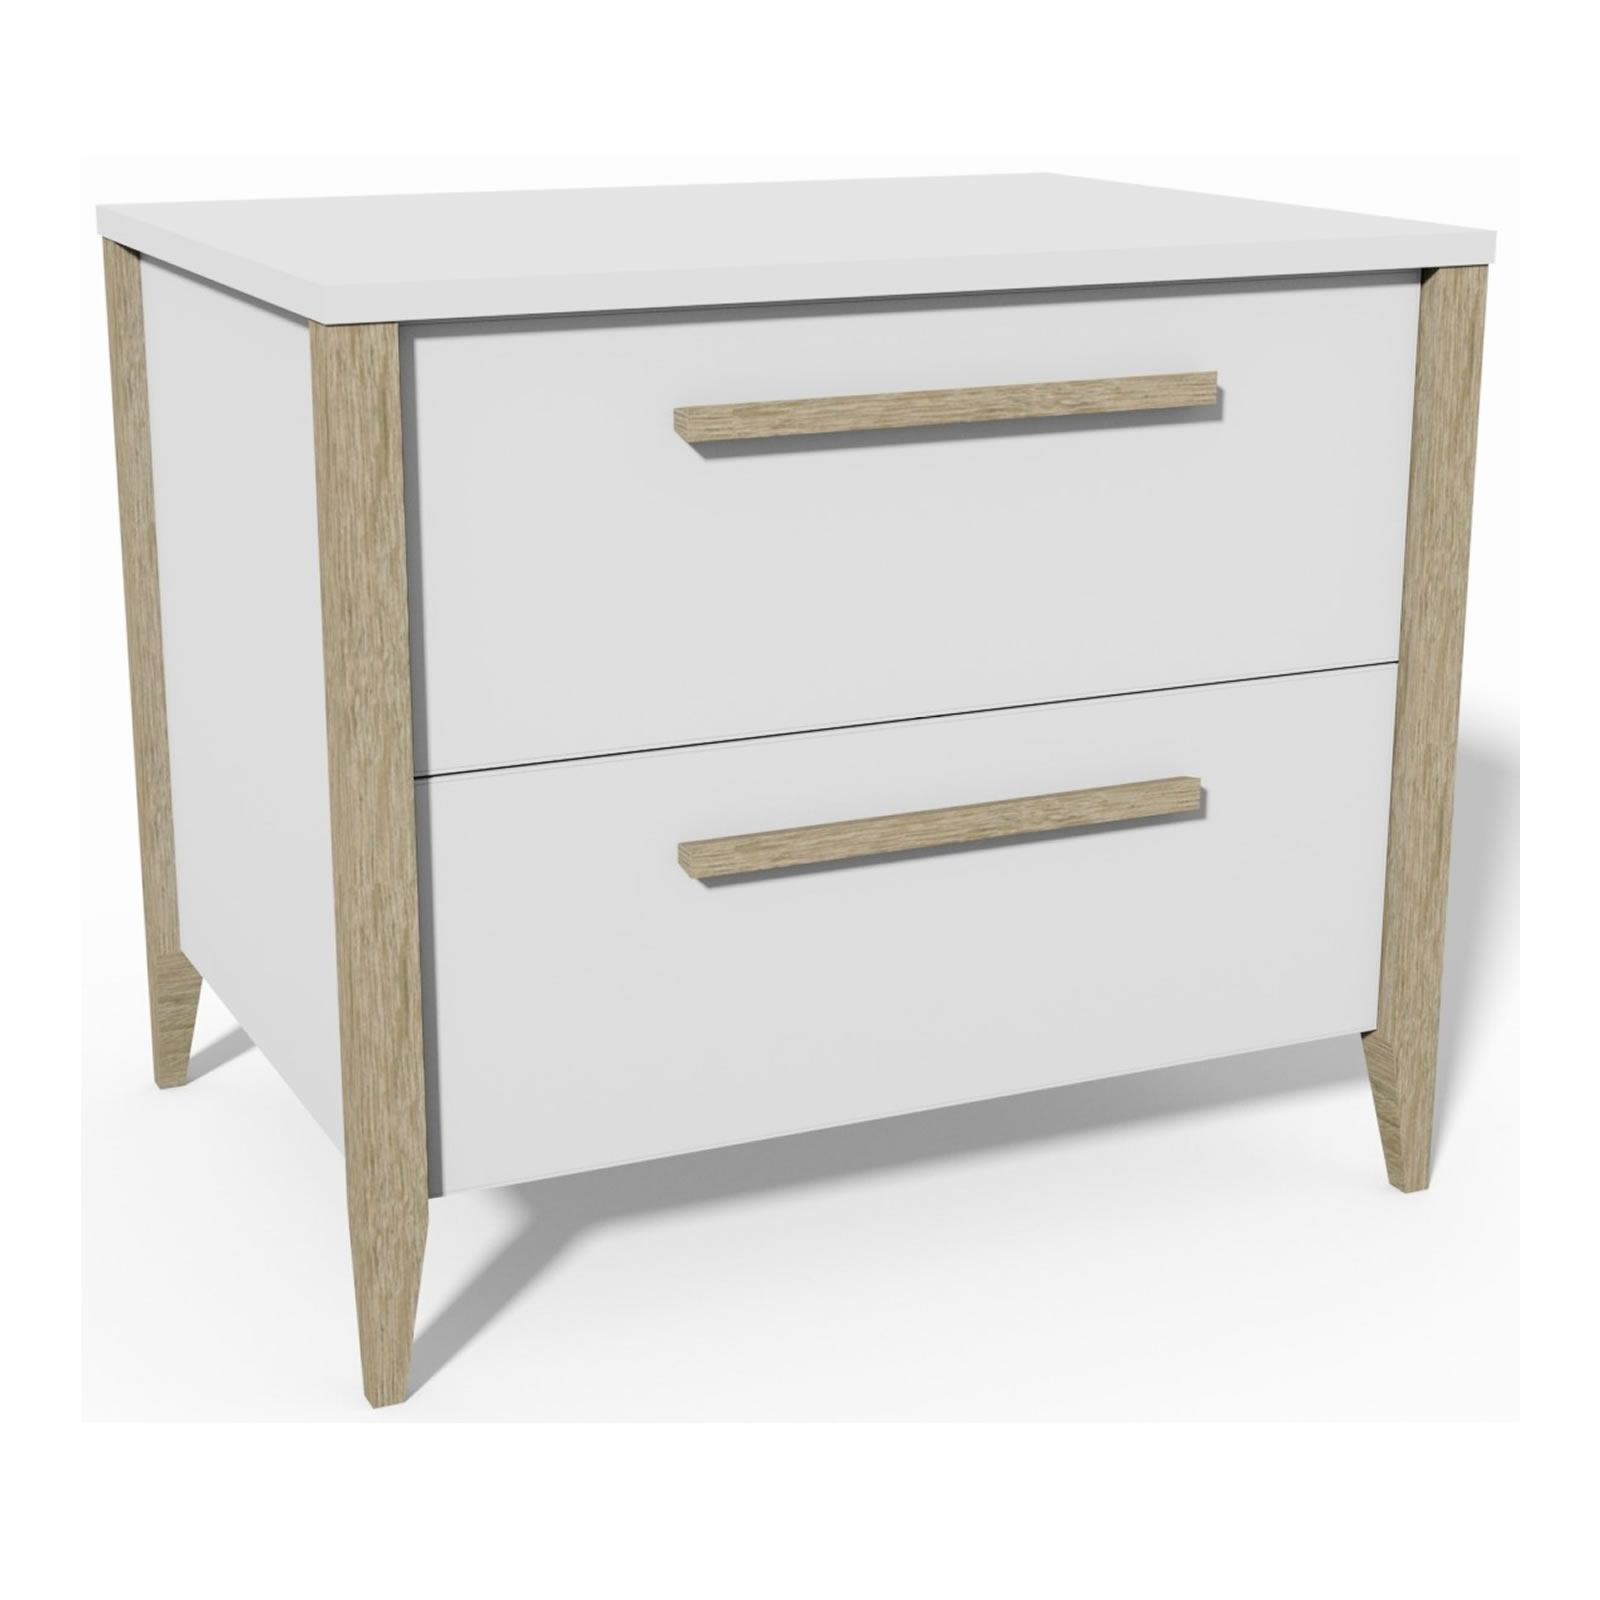 Moda 2 Drawer Nightstand